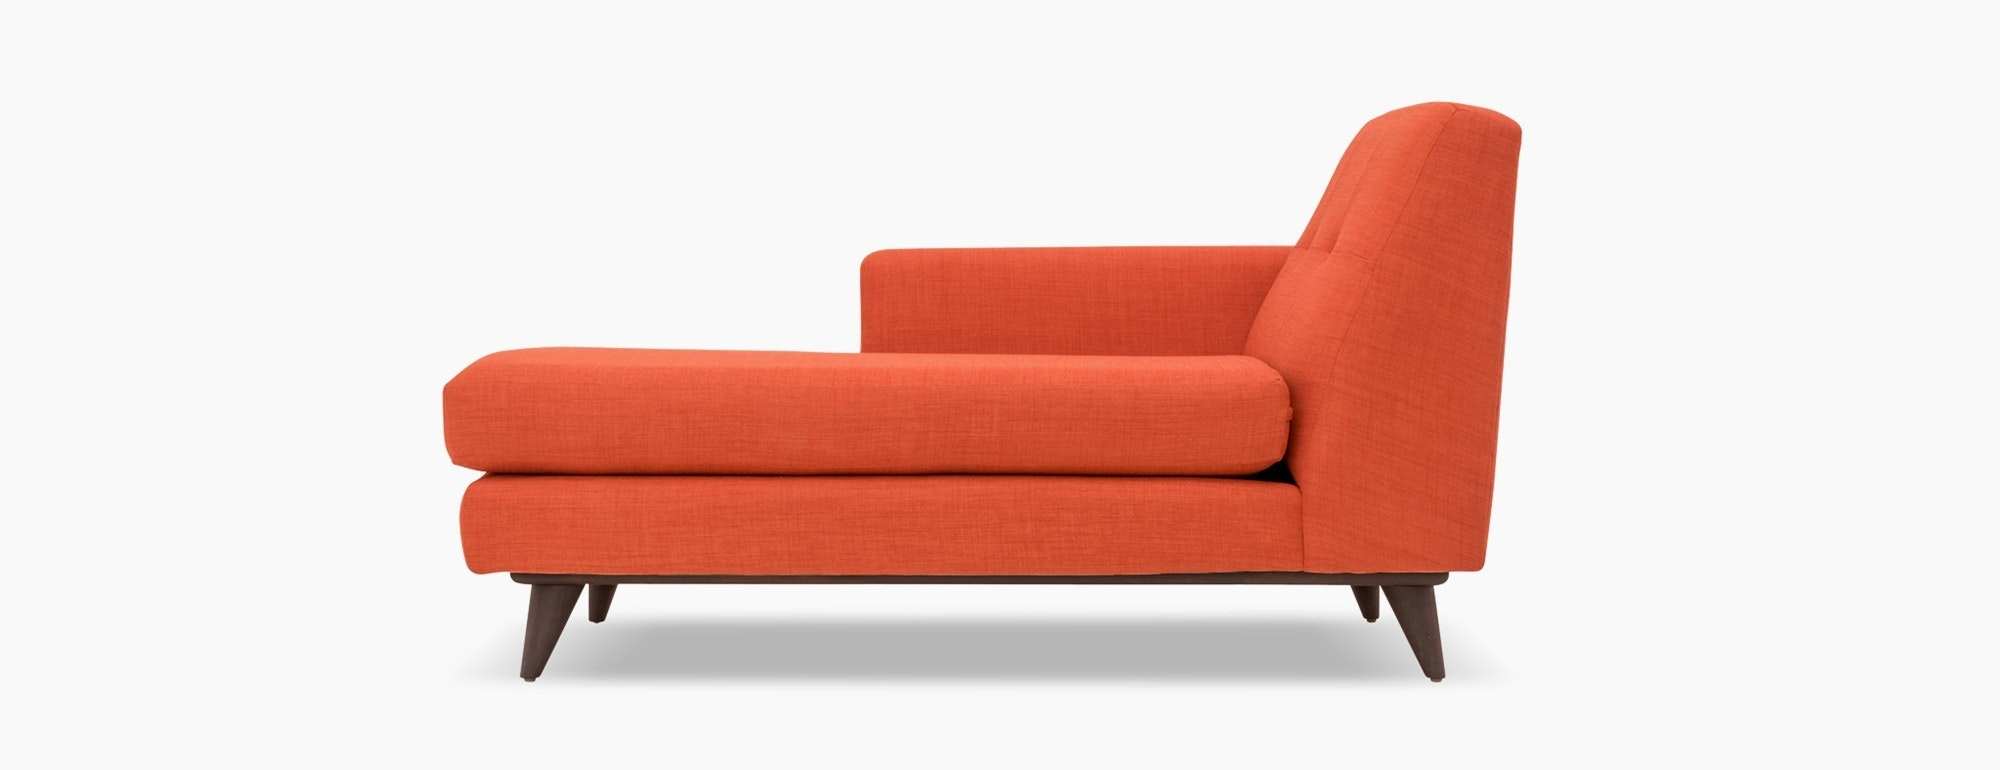 One Arm Chaises Pertaining To Most Popular Hughes Single Arm Chaise (View 10 of 15)